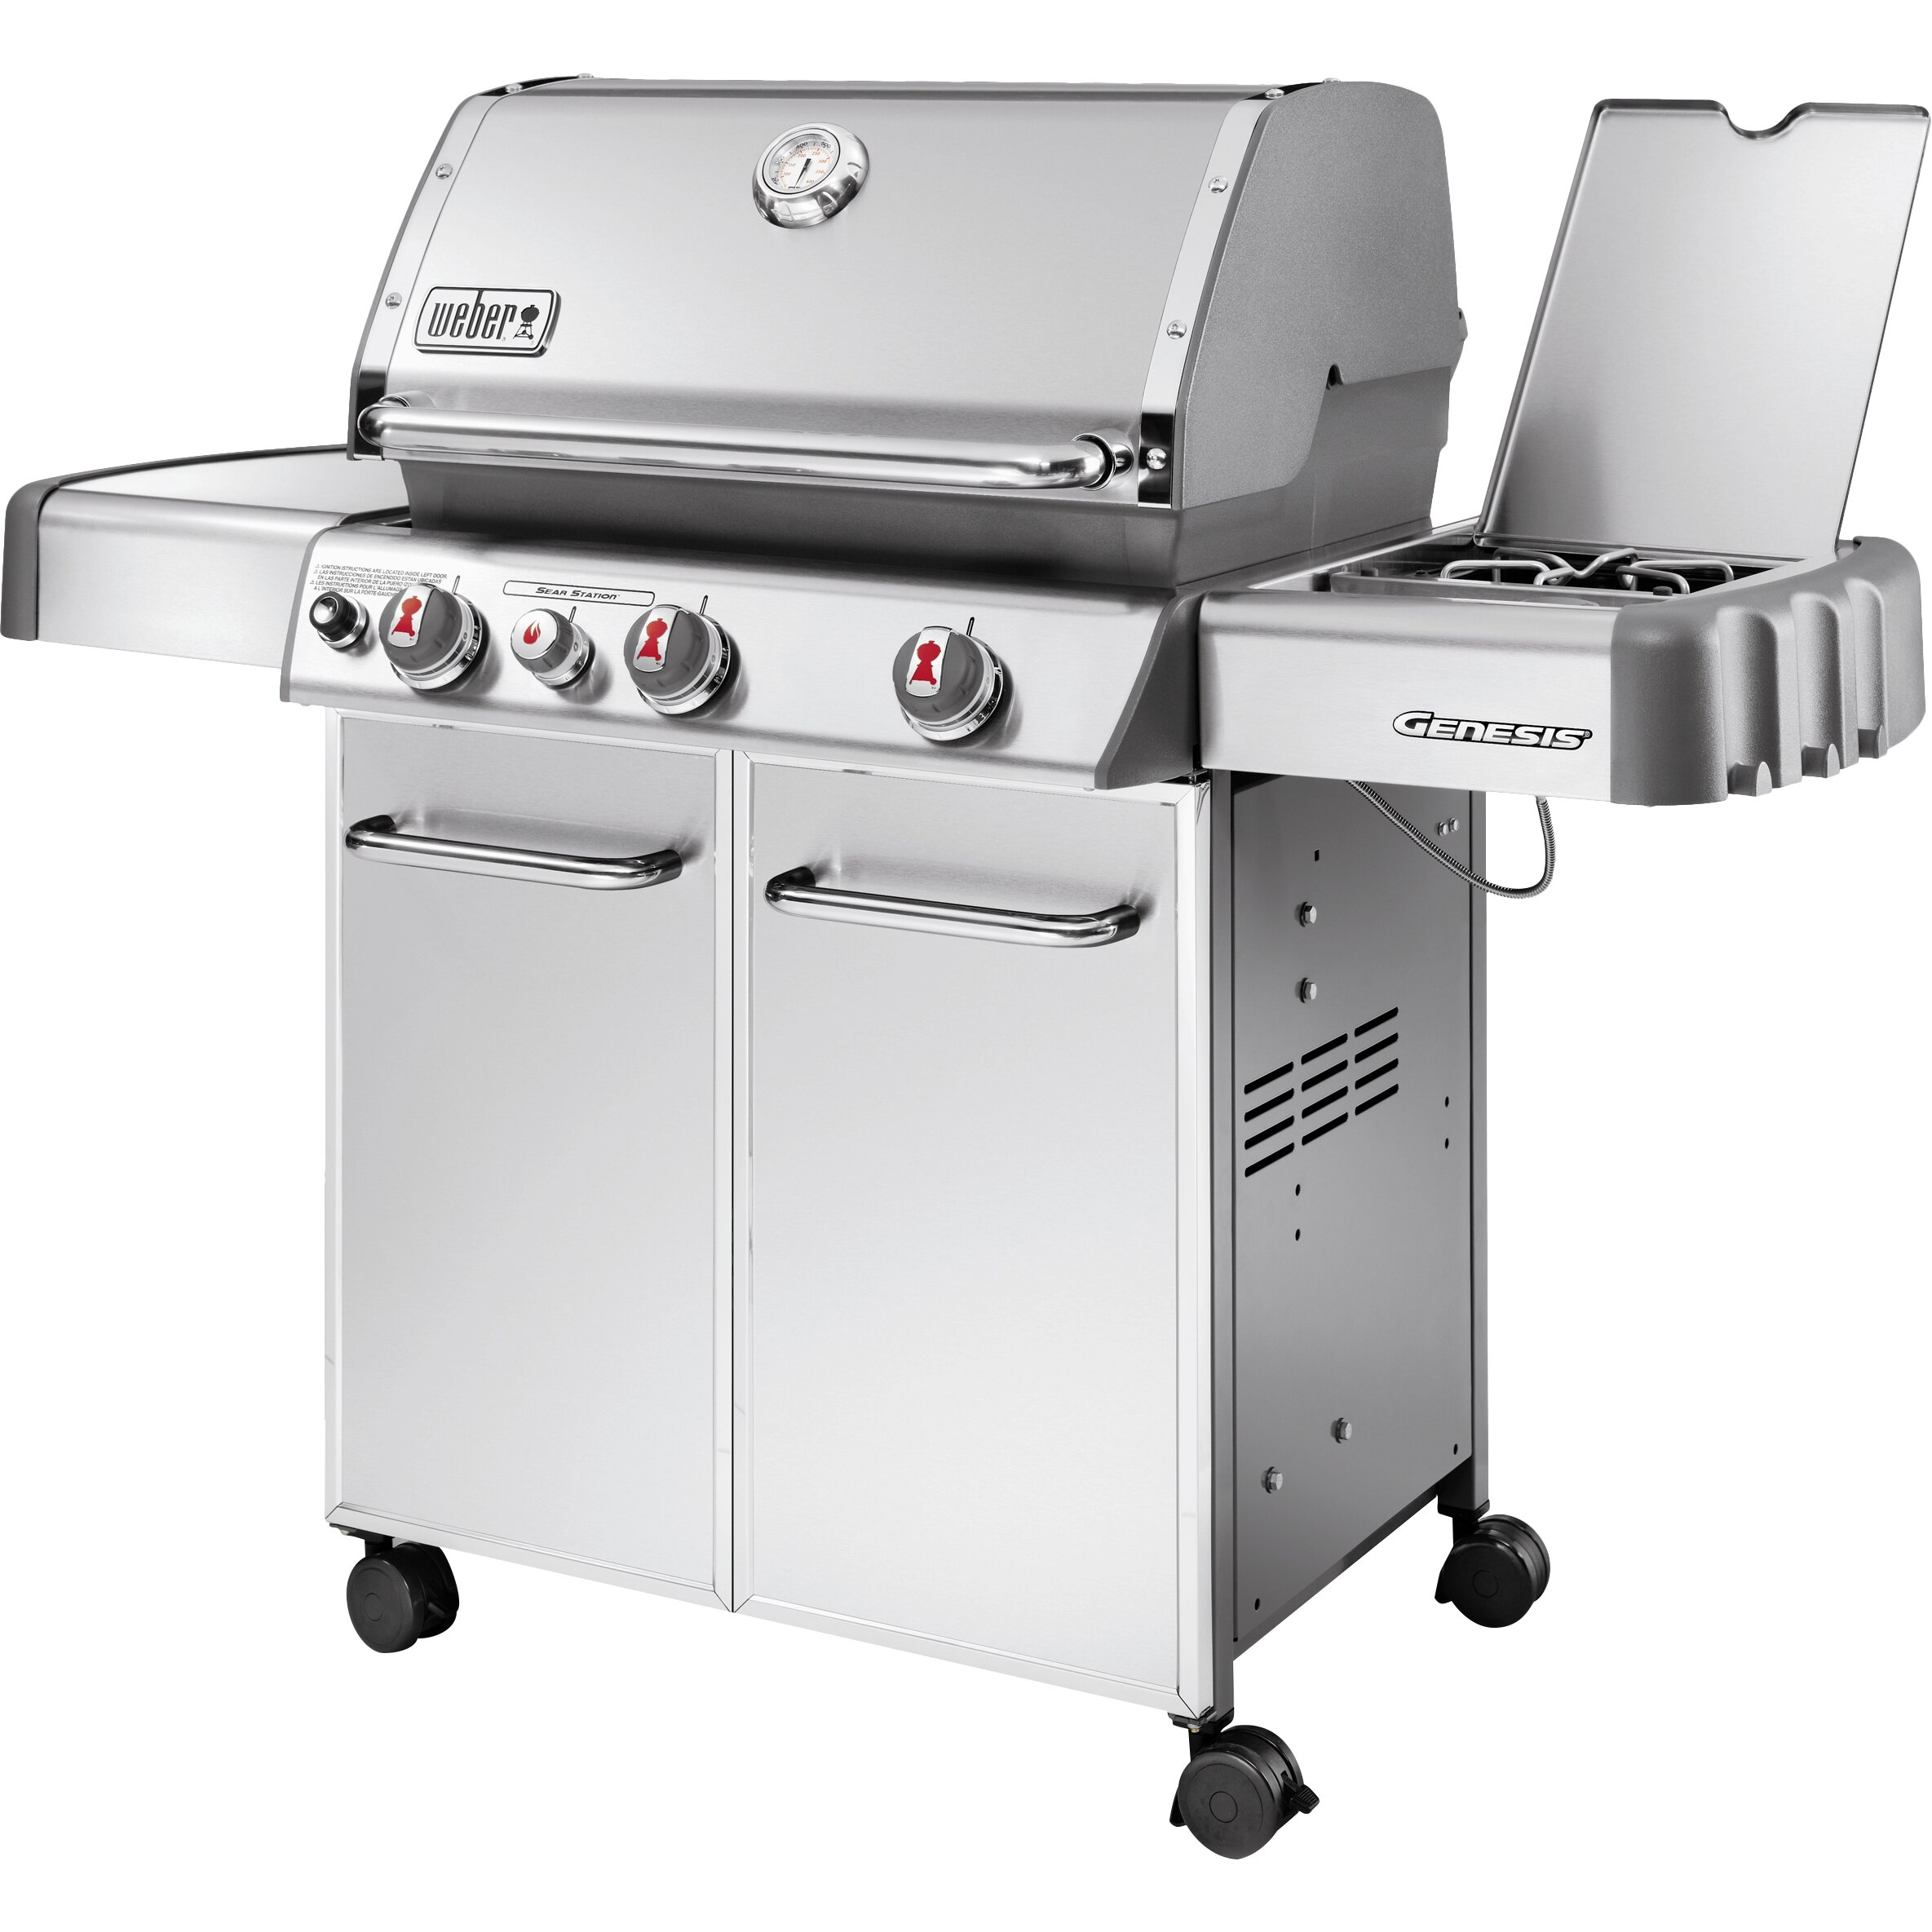 weber genesis s 330 gas grill reviews wayfair. Black Bedroom Furniture Sets. Home Design Ideas